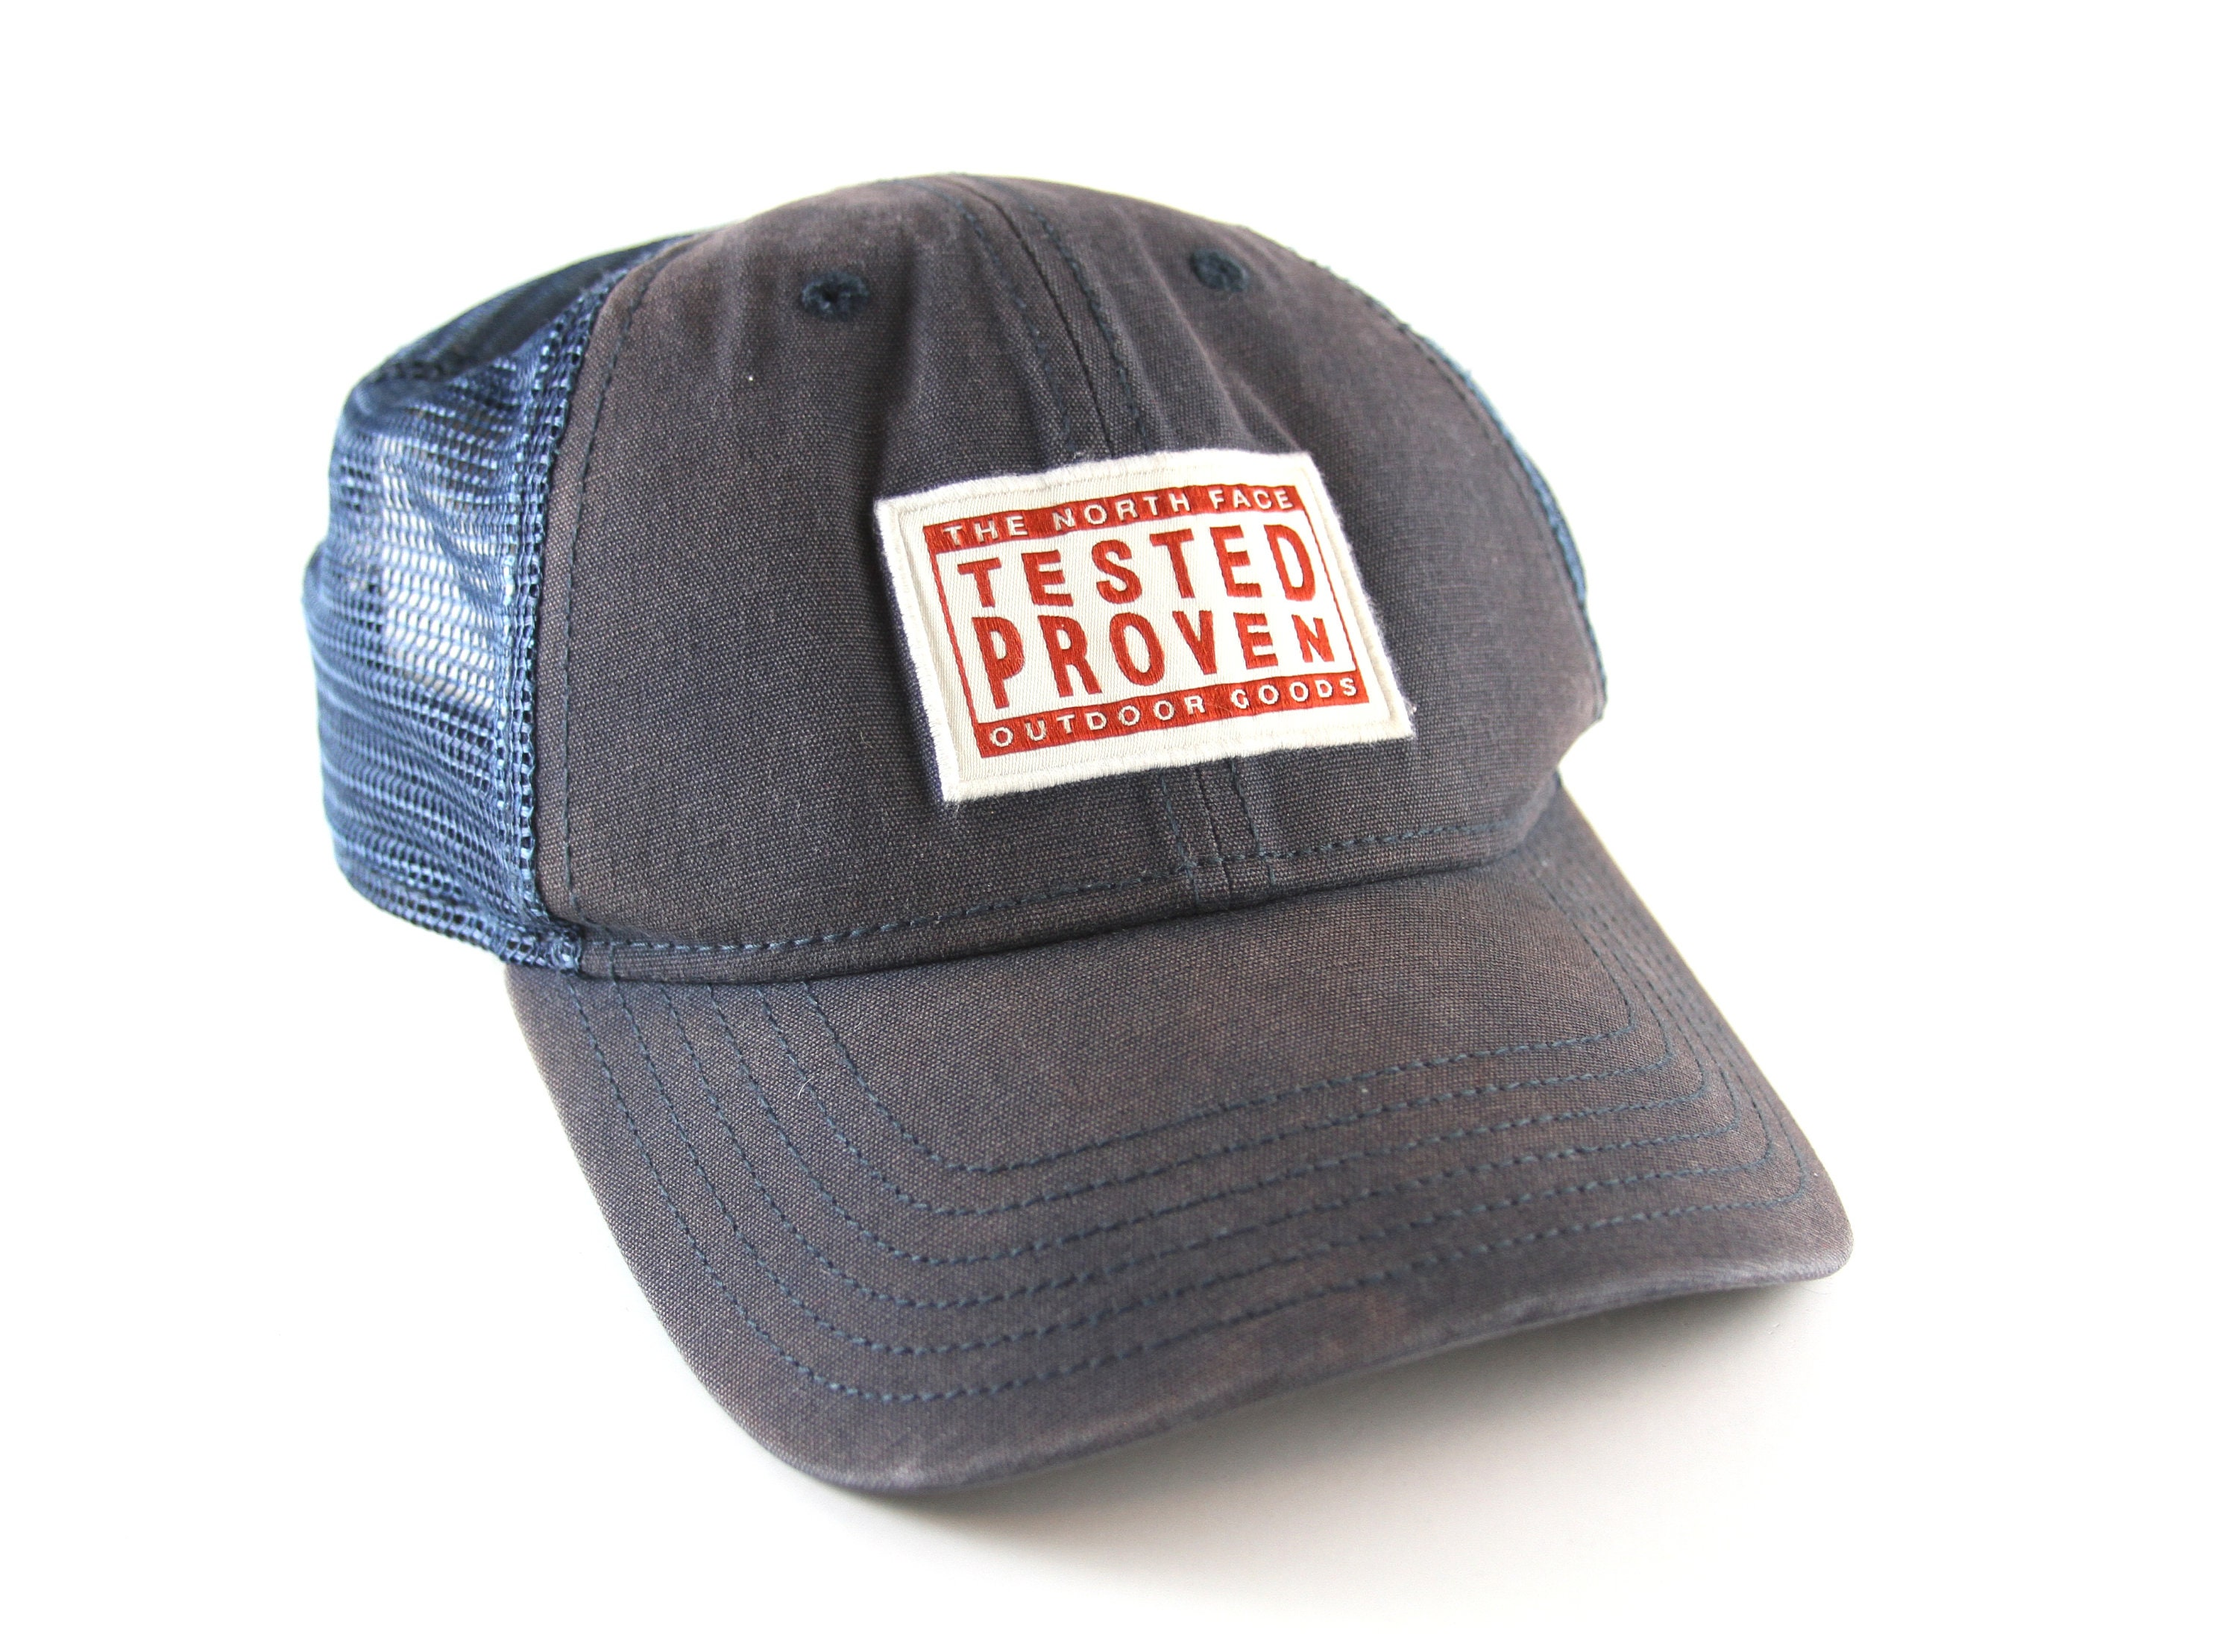 Distressed The North Face Tested Proven Dad Hat    Outdoor  5b48c638a81